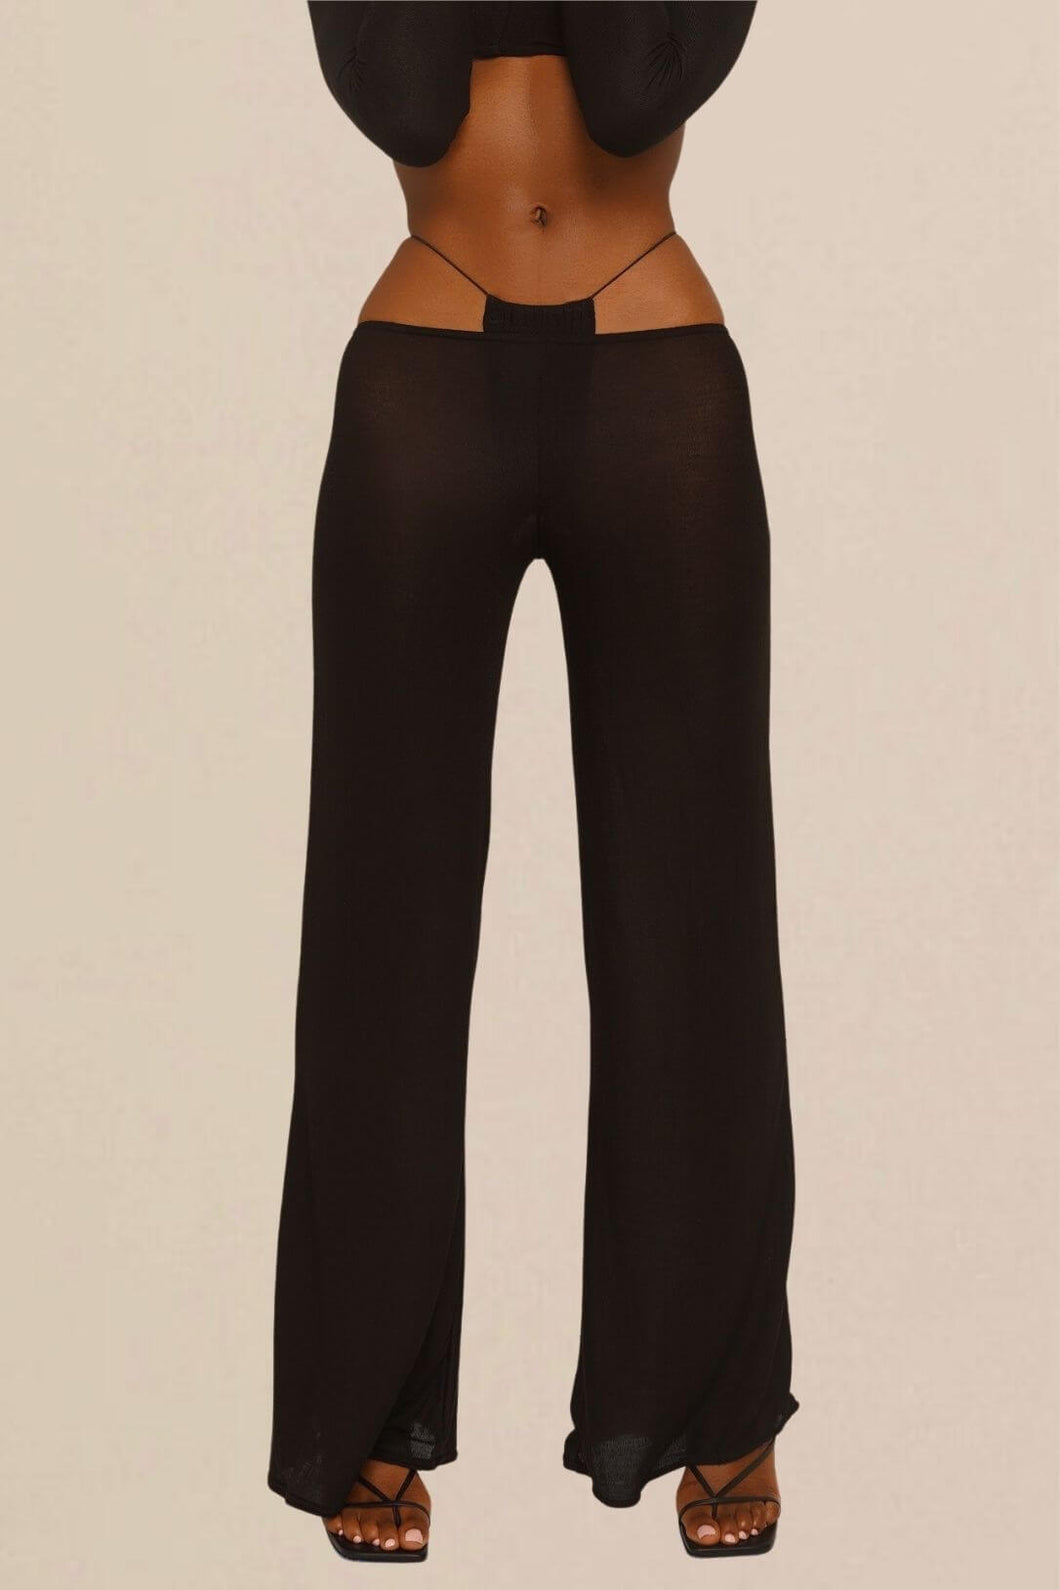 Black DEMI pants from JET NOIRE